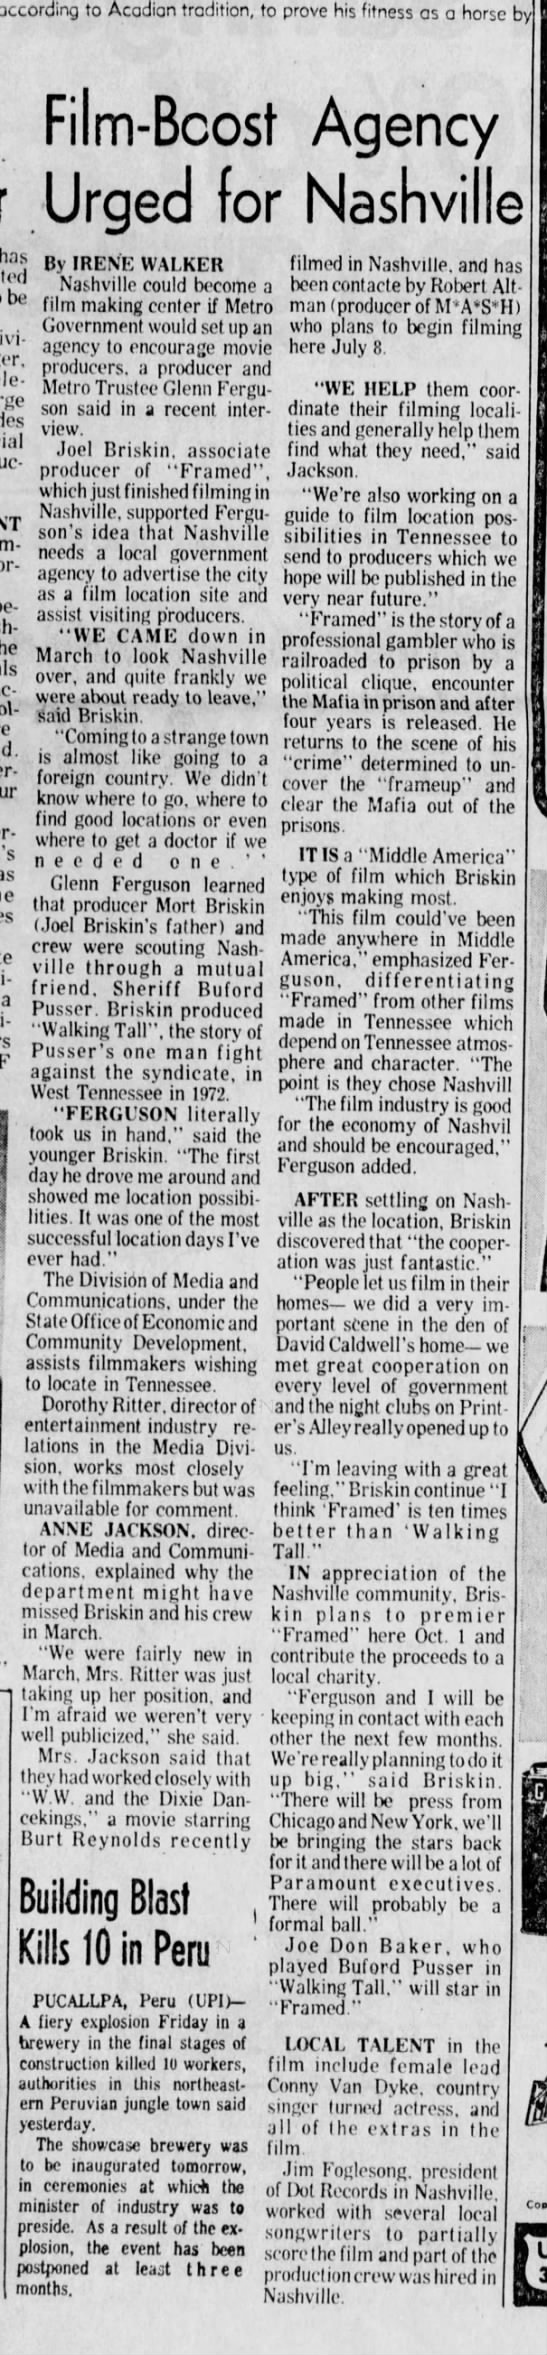 1974-06-23 TENNESSEAN Film-Boost Agency Urged for Nashville_20A - according to Acadian tradition, to prove his...